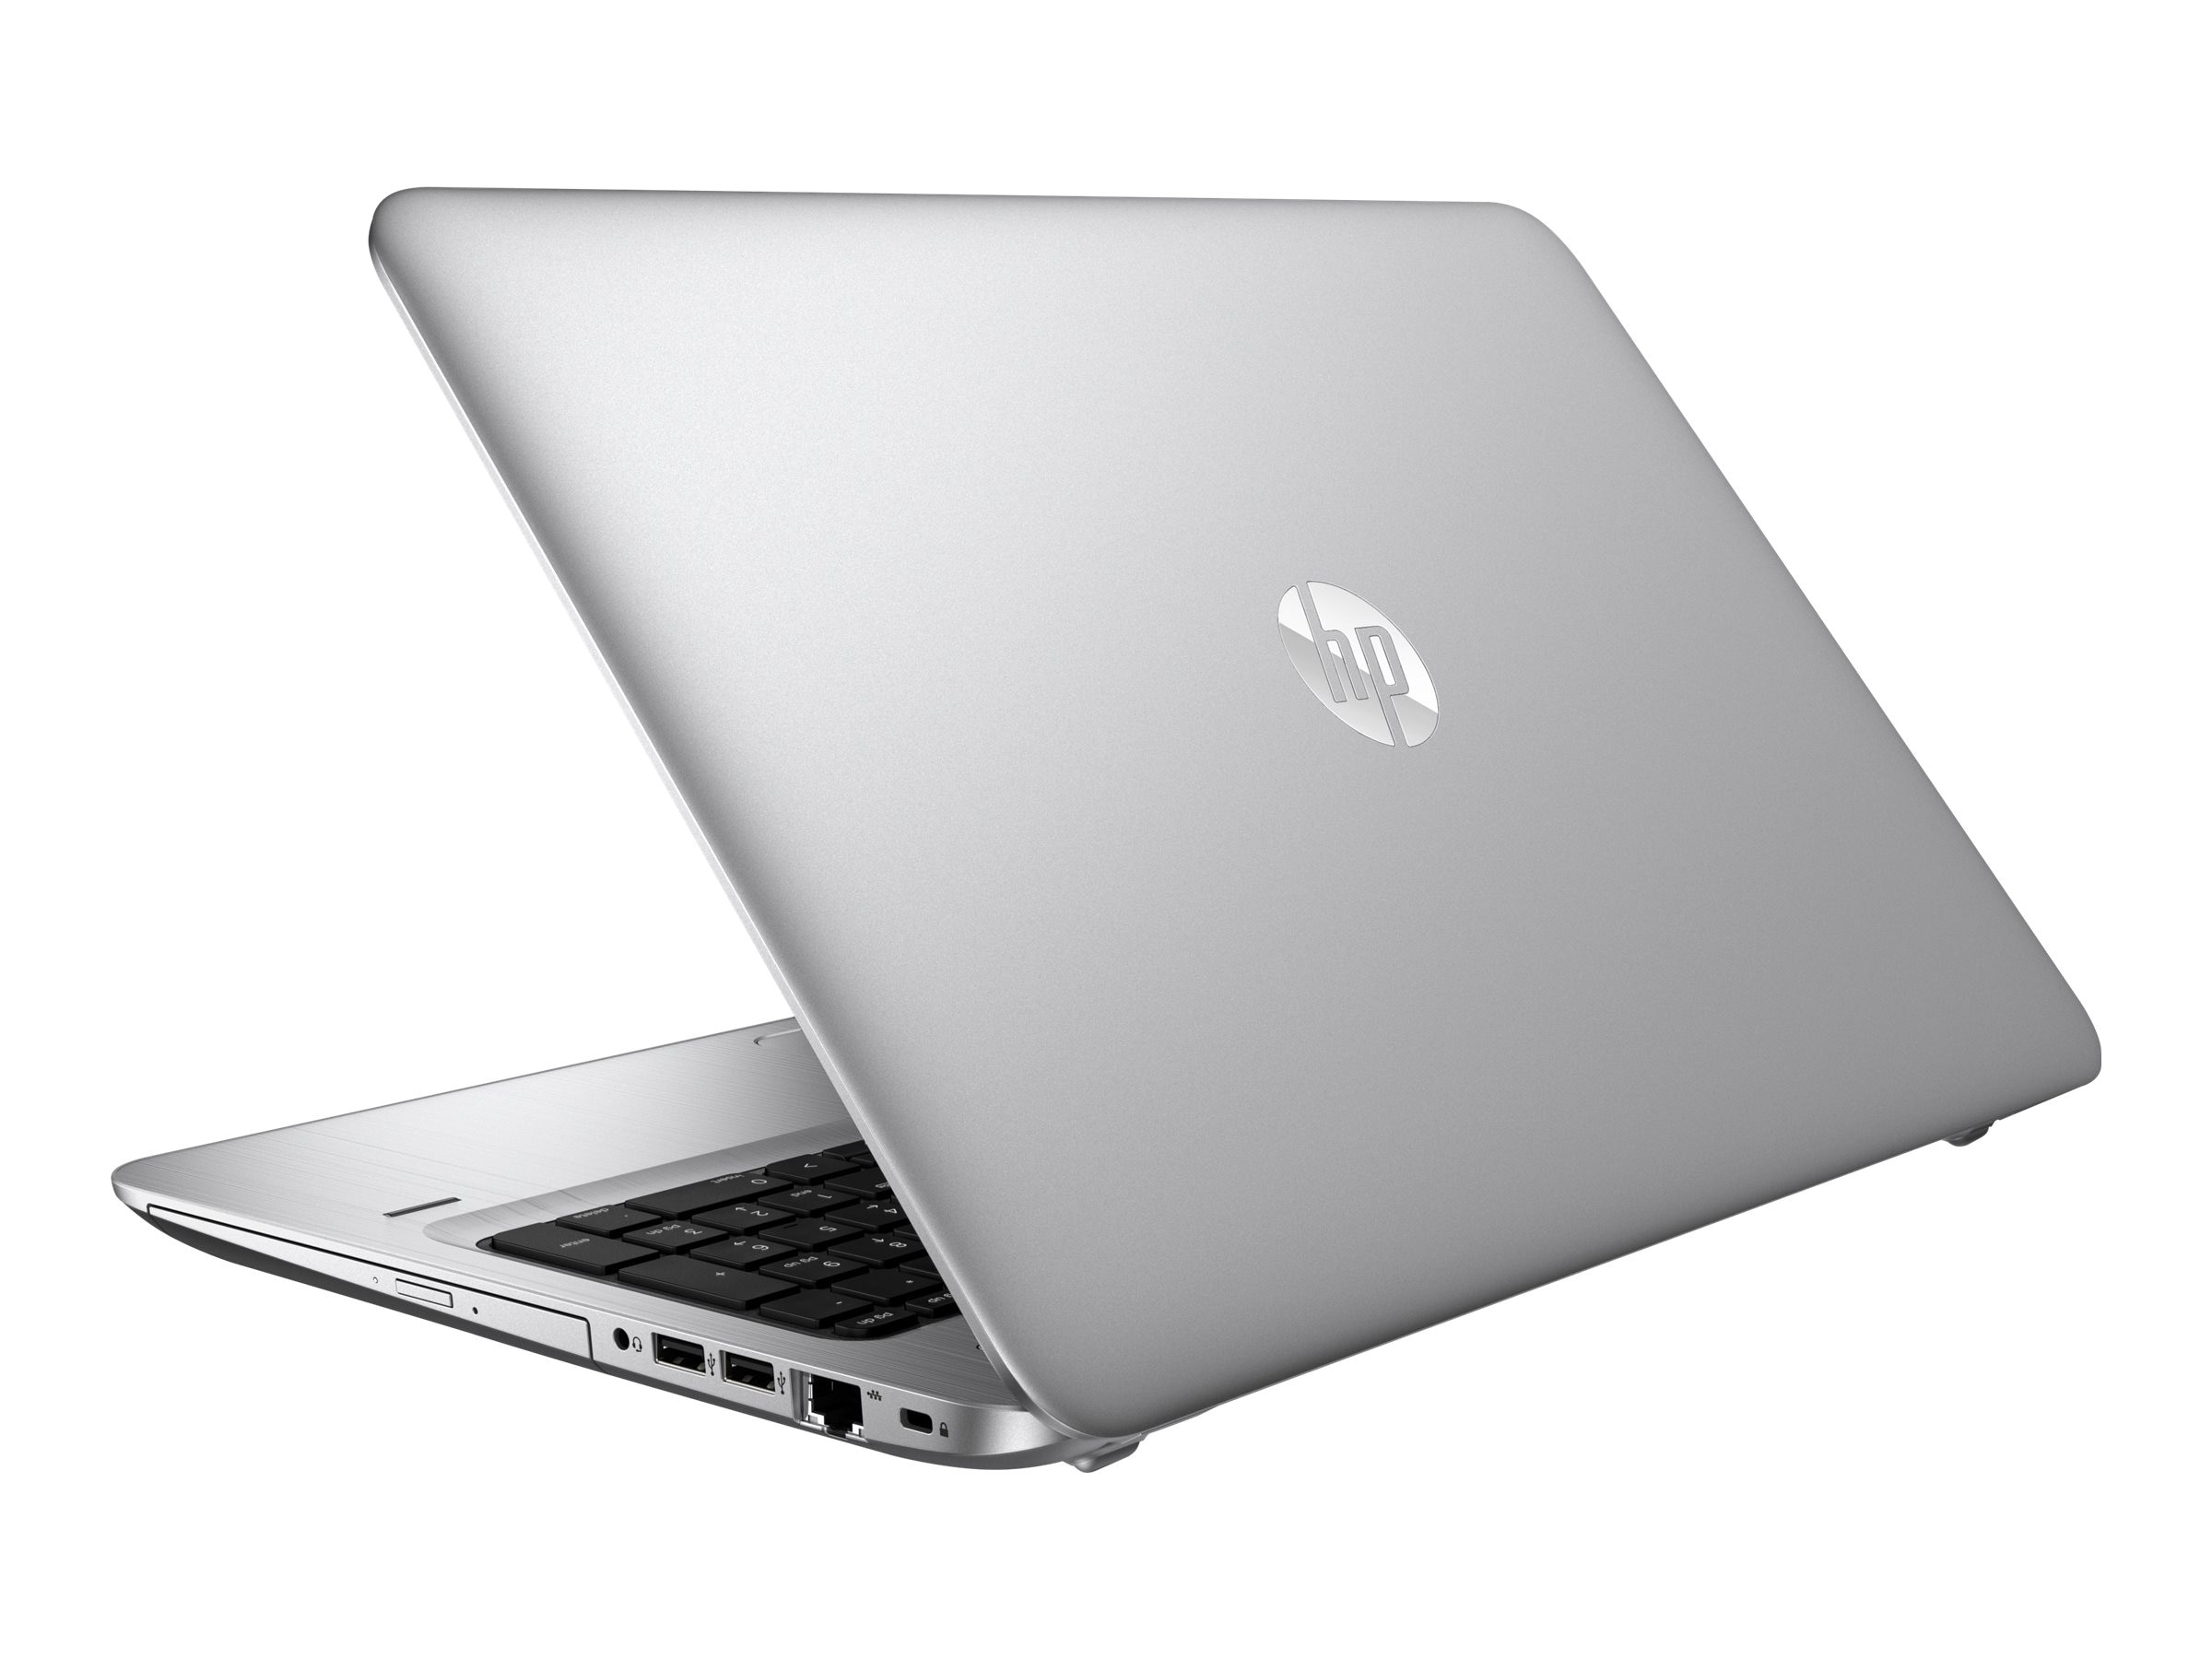 HP ProBook 470 G4 2.7GHz Core i7 17.3in display, Z1Z76UT#ABA